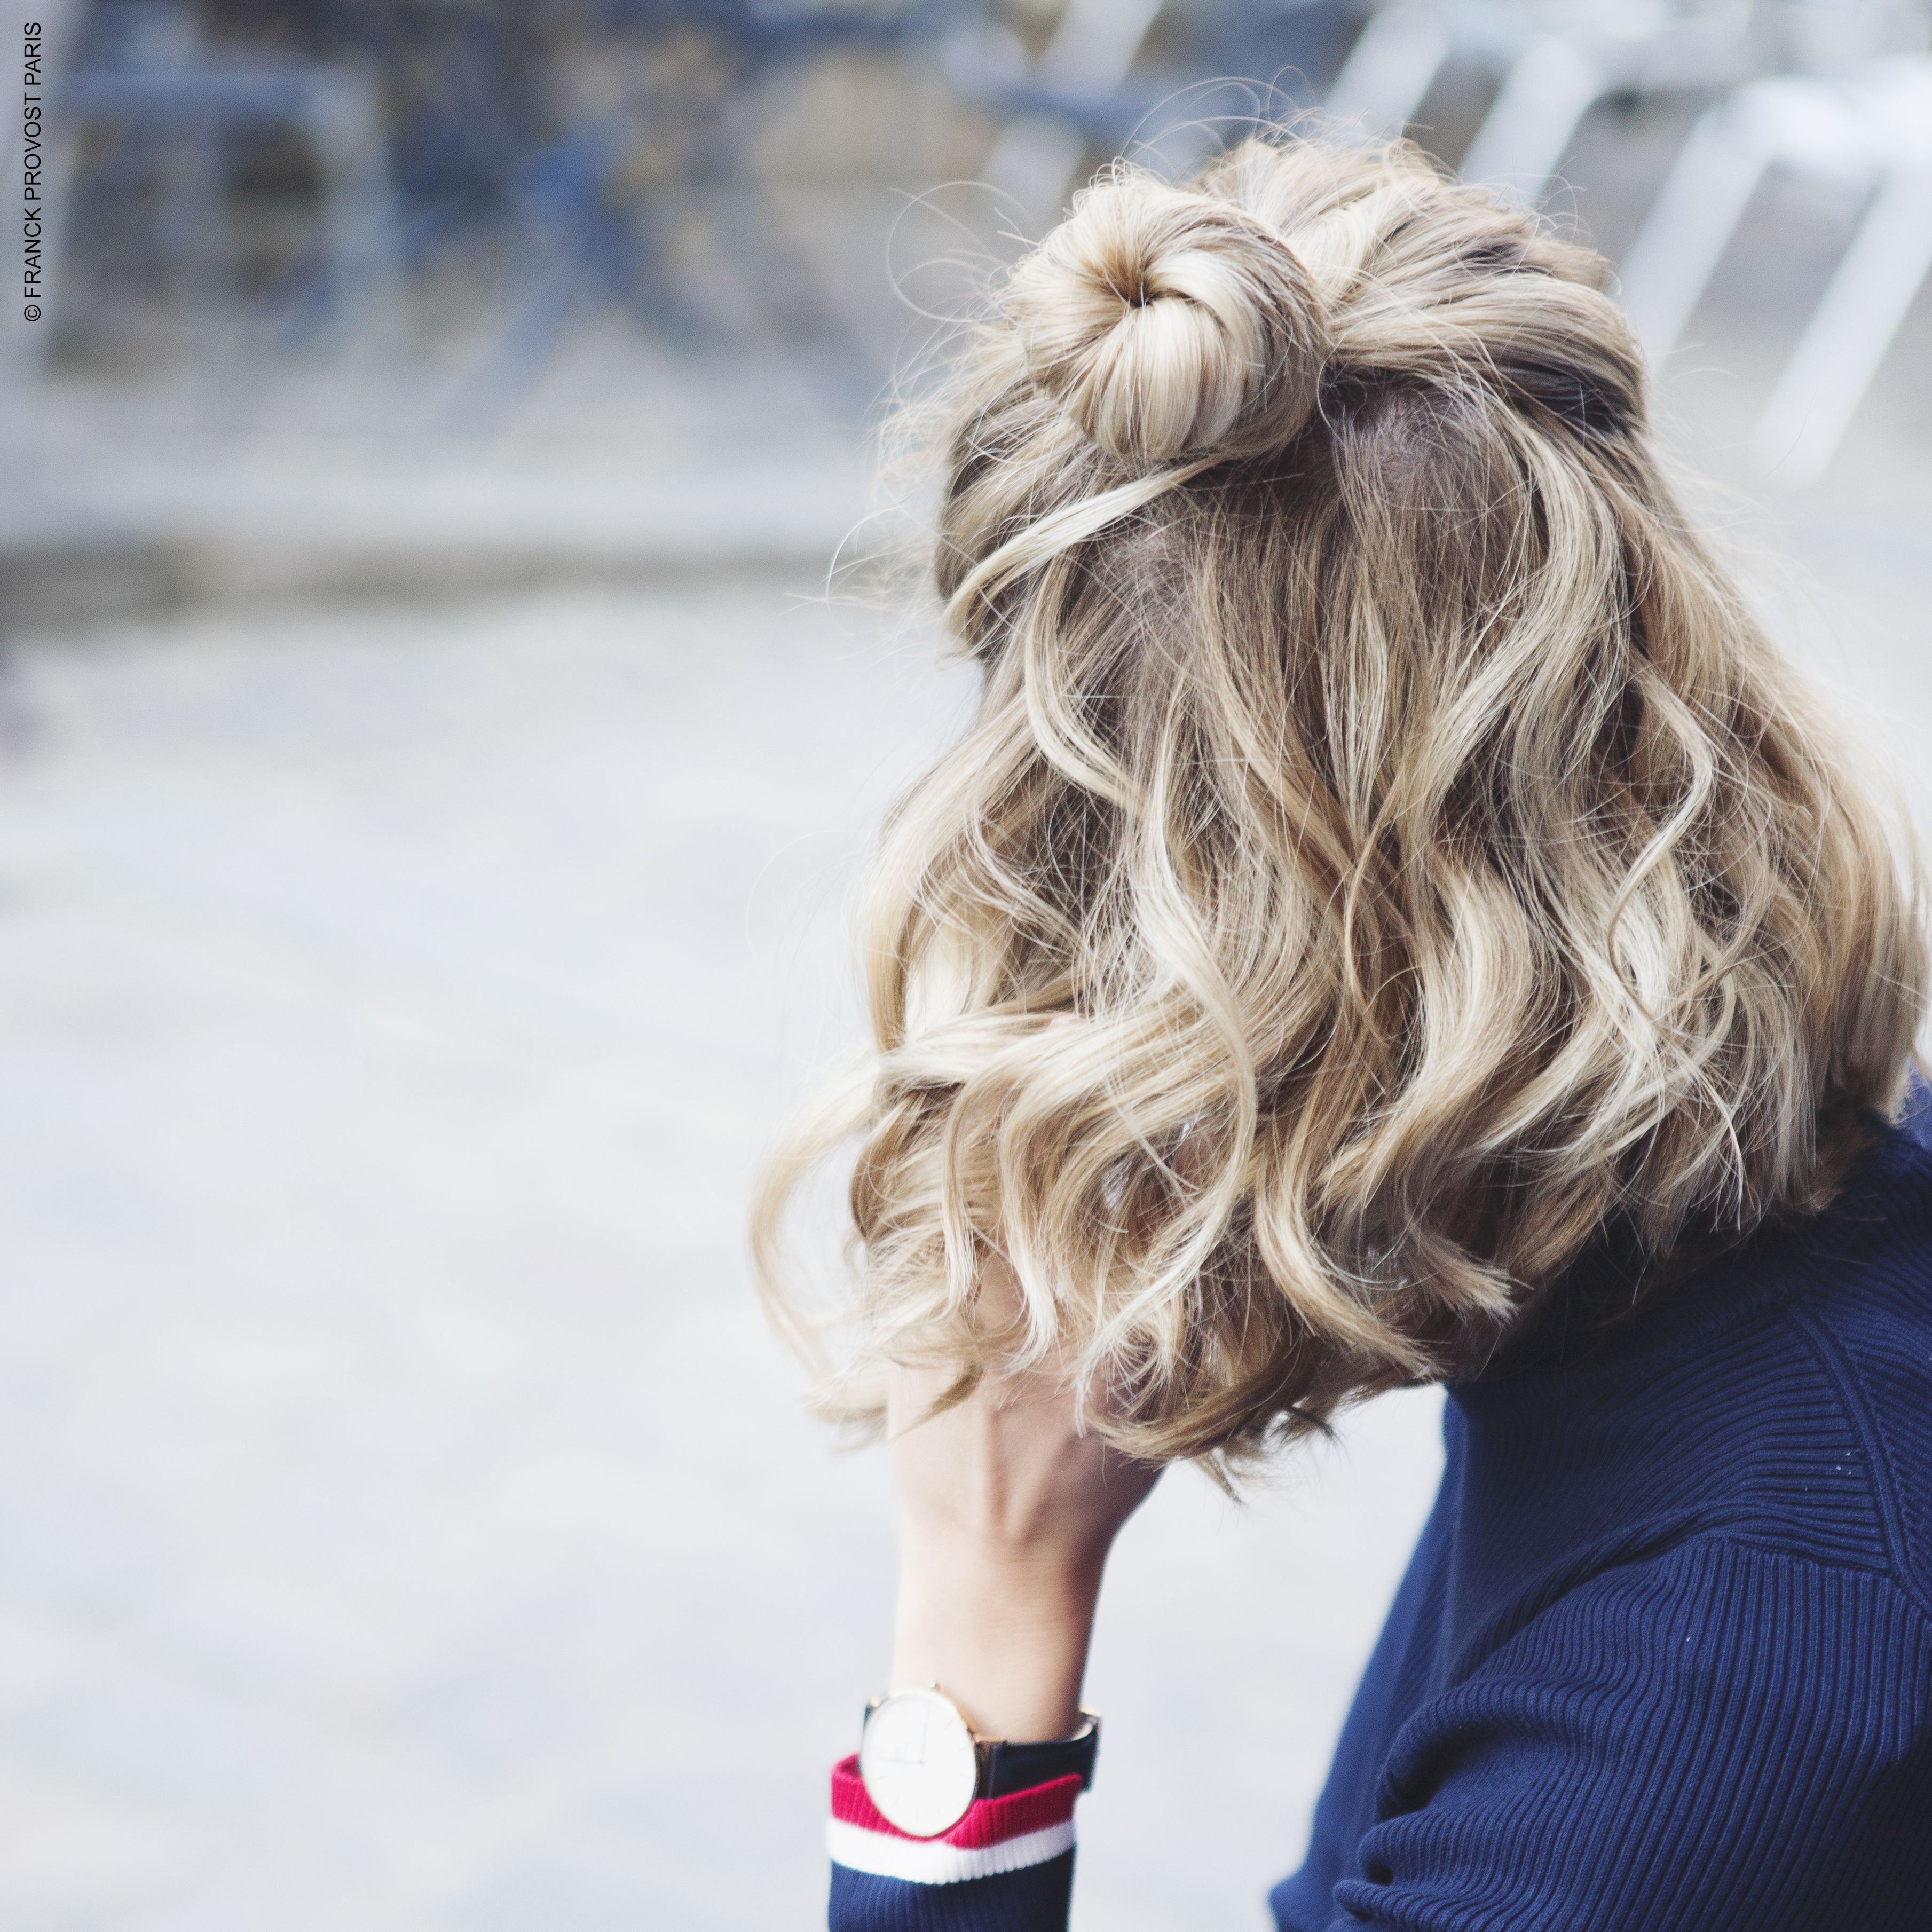 Pin by kaylee smith on strands in pinterest hair styles